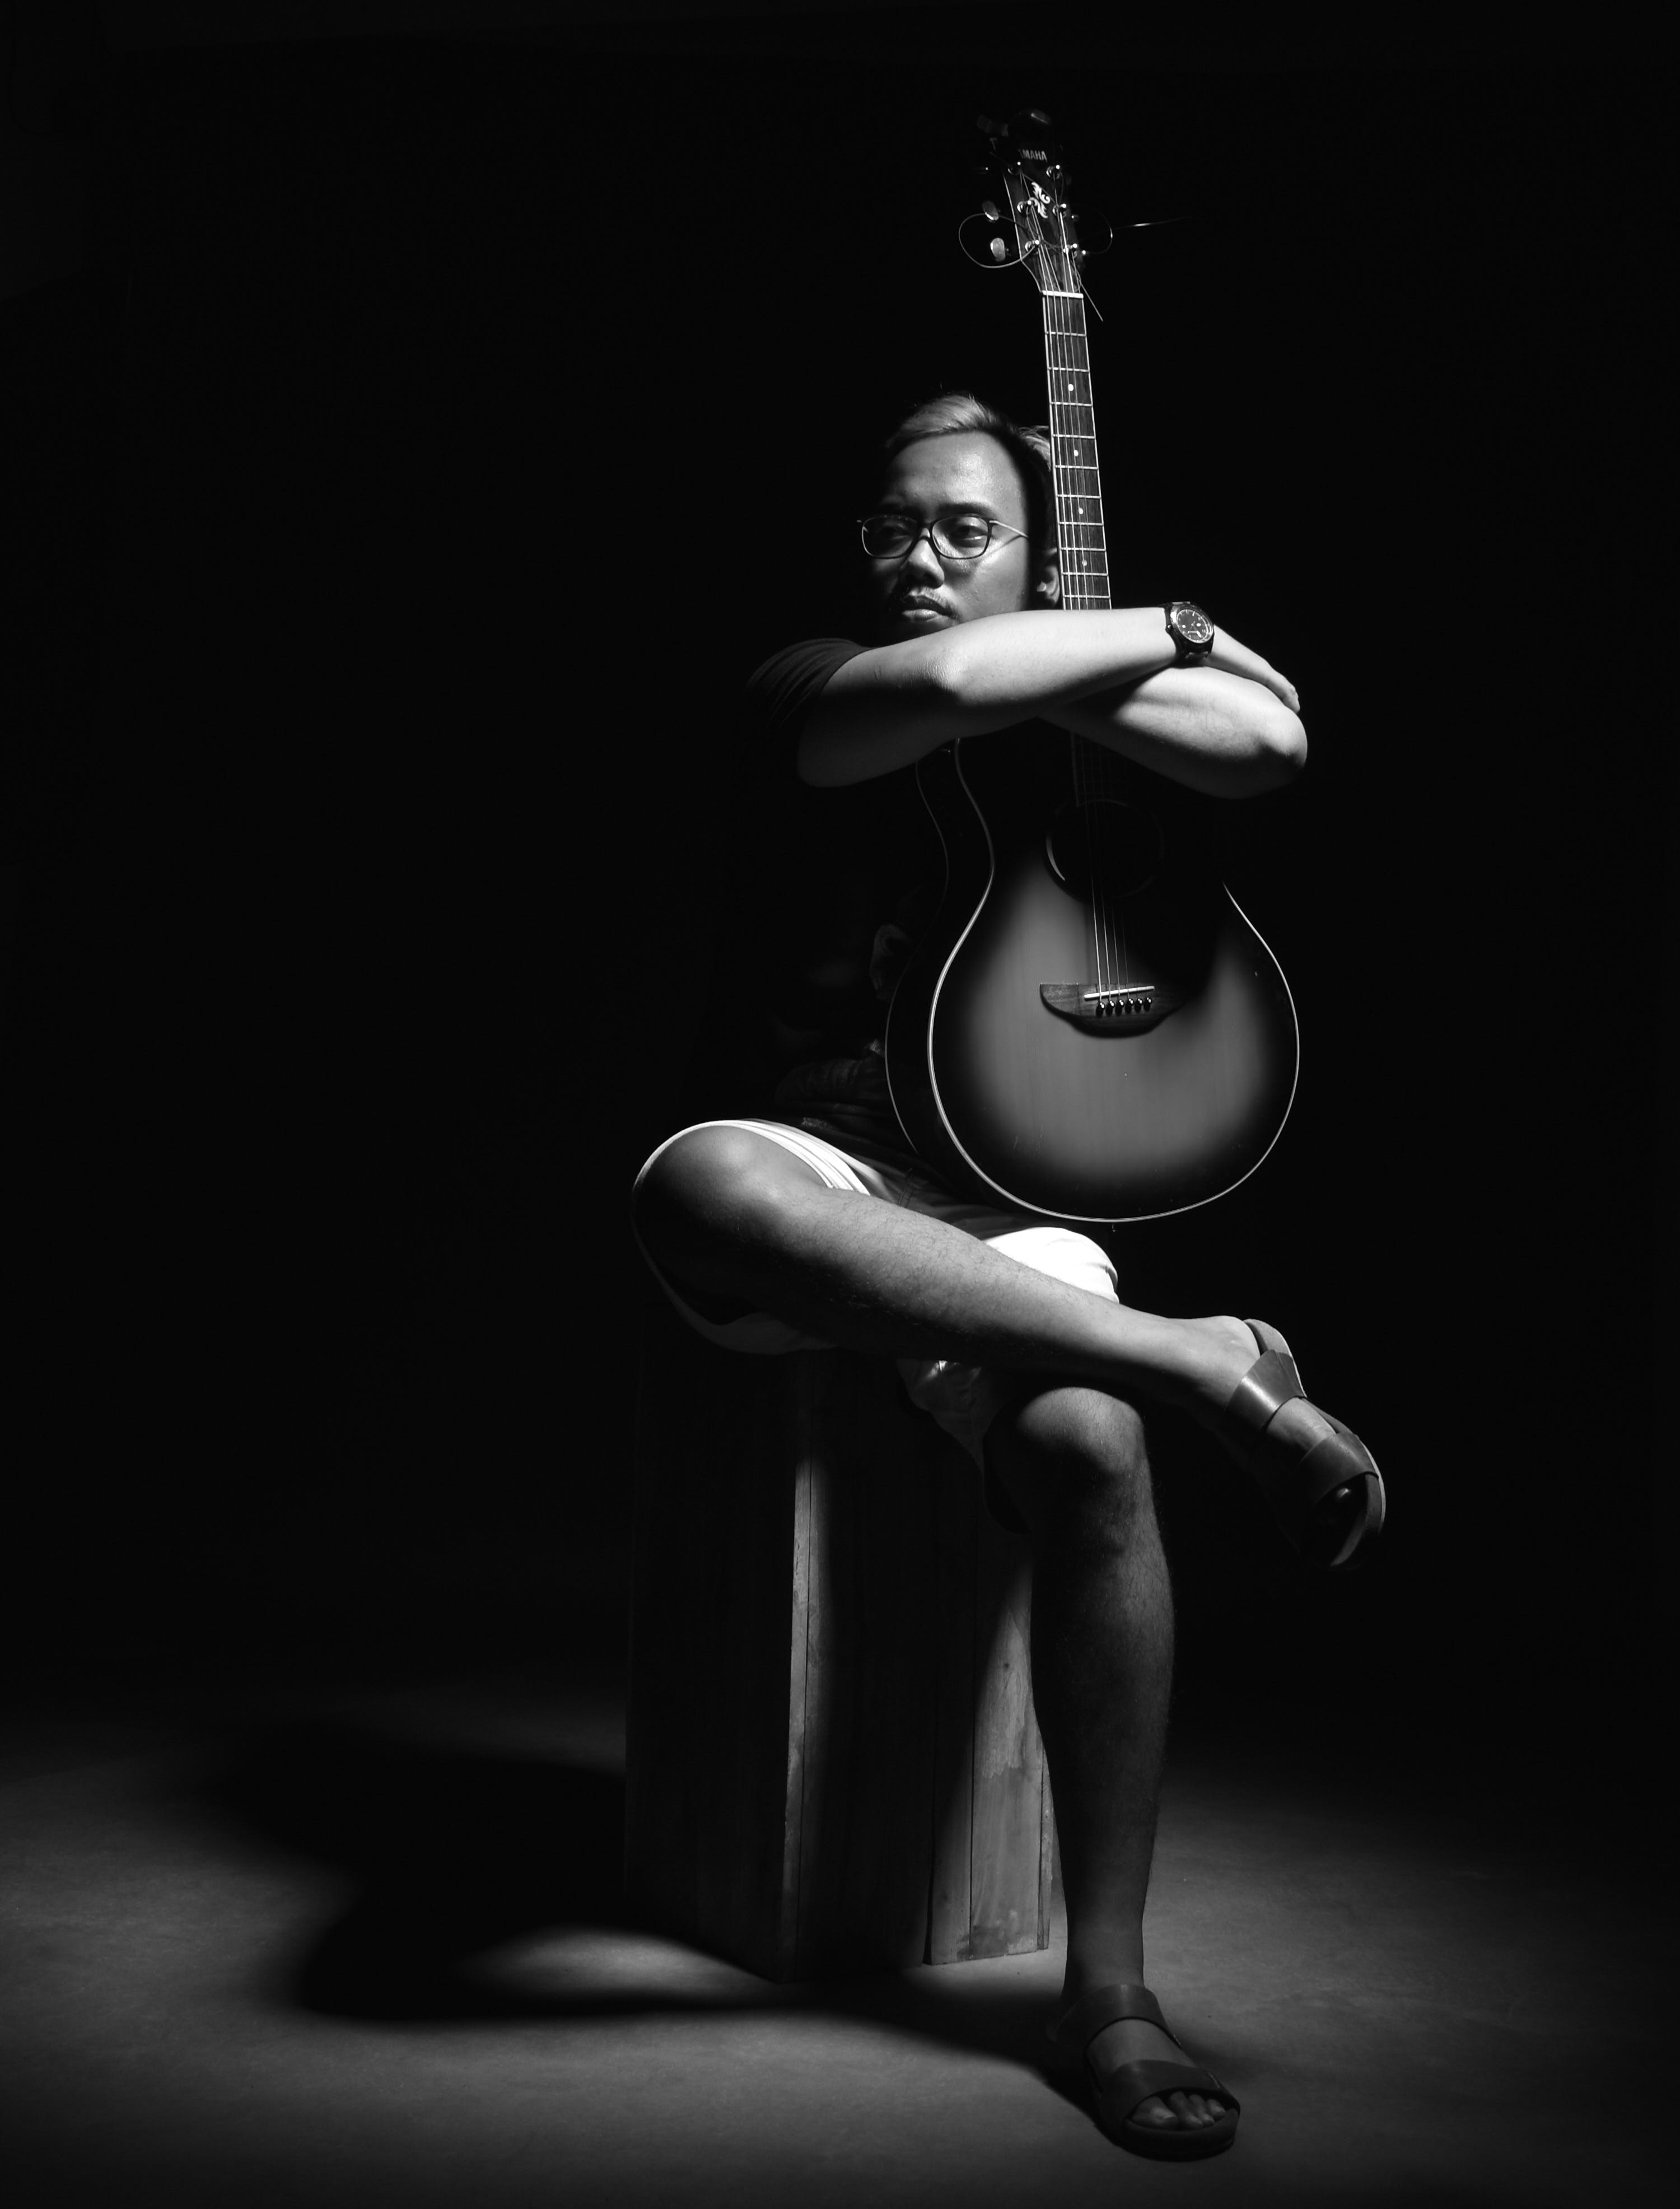 Free stock photo of black-and-white, person, dark, musical instrument